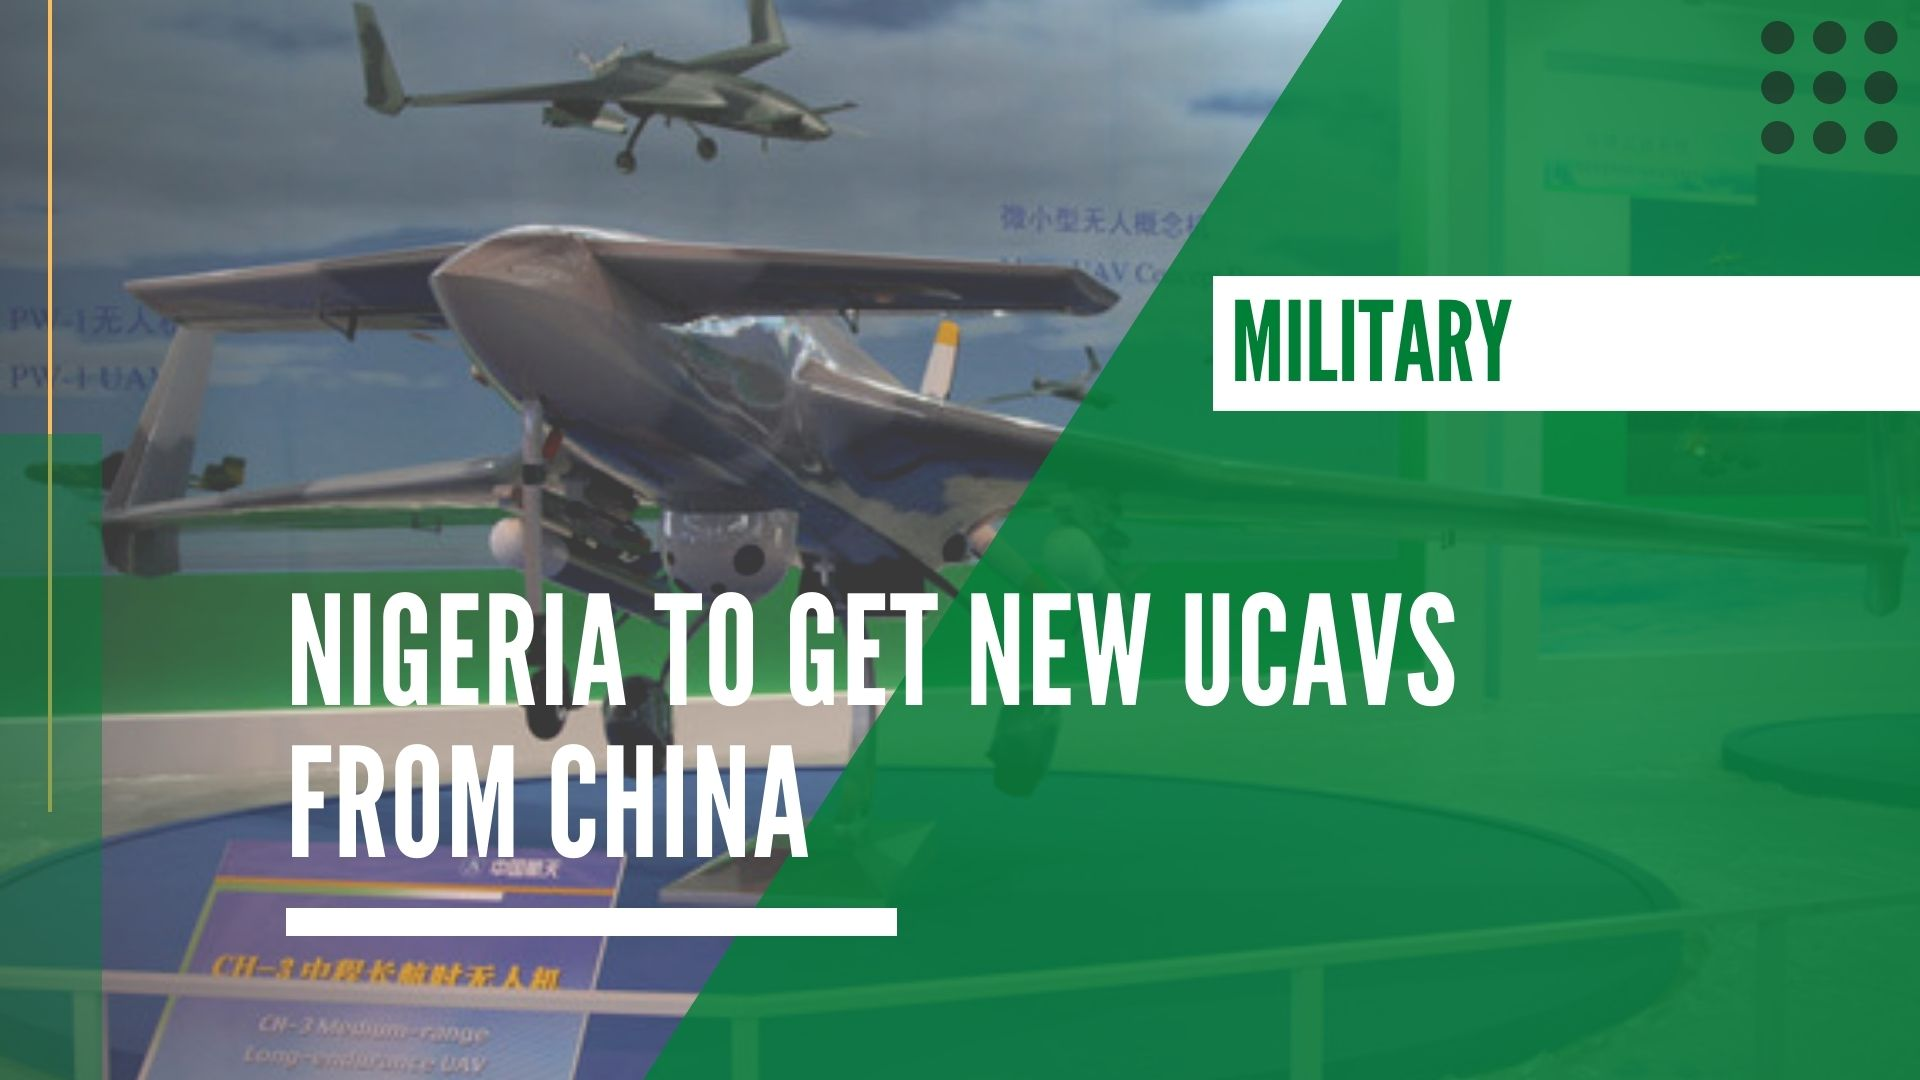 Nigeria to get new UCAVs from China